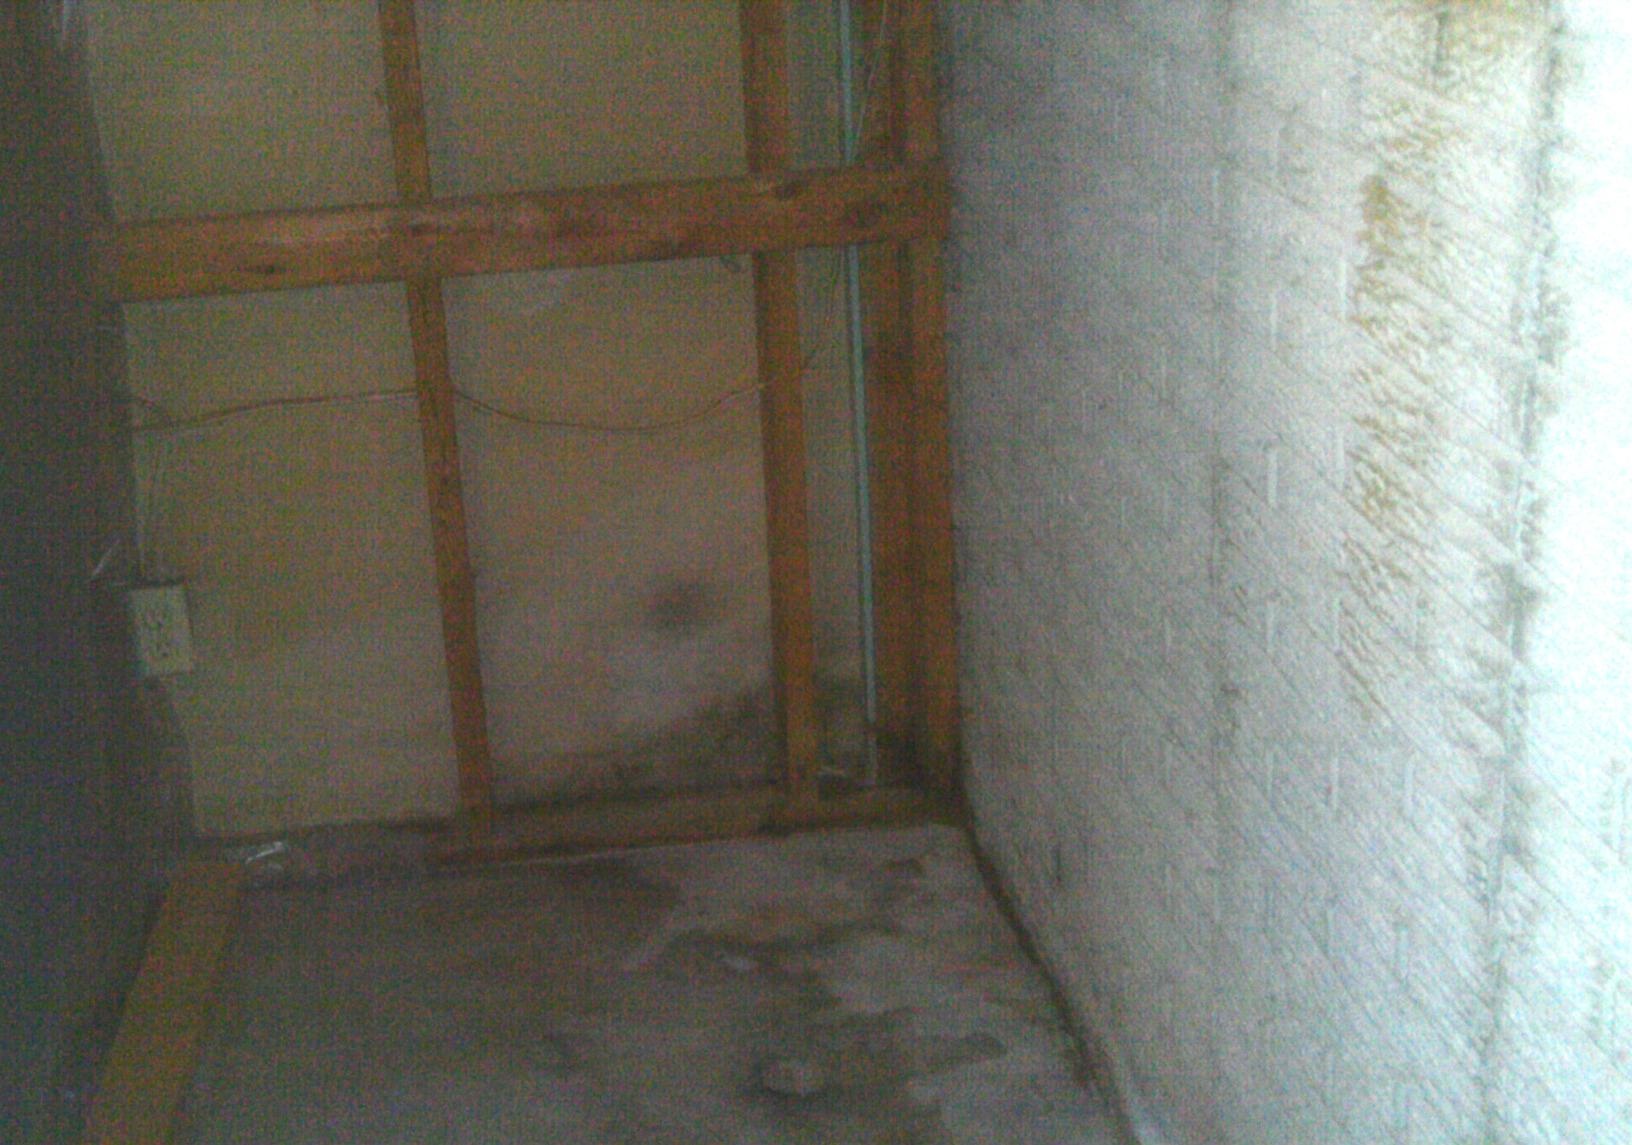 Becasue of repeated water intrusion, this basement sustained some visible damage on the walls and floor of the basement.